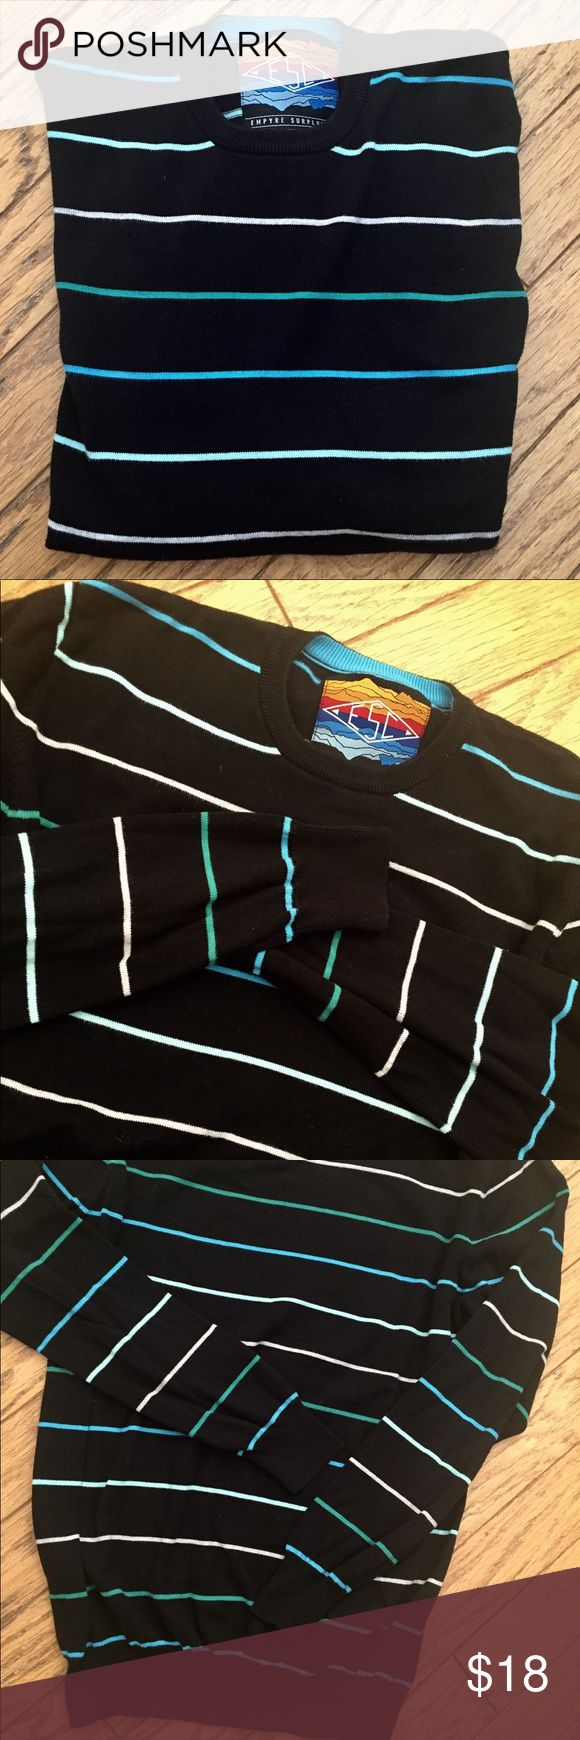 Zumiez Men's Black Crewneck Pullover Sweater EMPYRE SUPPLY CO. - ESC Zumiez Brand. Men's black crew neck pullover sweater with white, blue, and green stripes. Excellent condition. Warm, soft and comfortable. No flaws. Men's regular size large. I discount all bundles of 2 or more by at least 20%! Zumiez Sweaters Crewneck